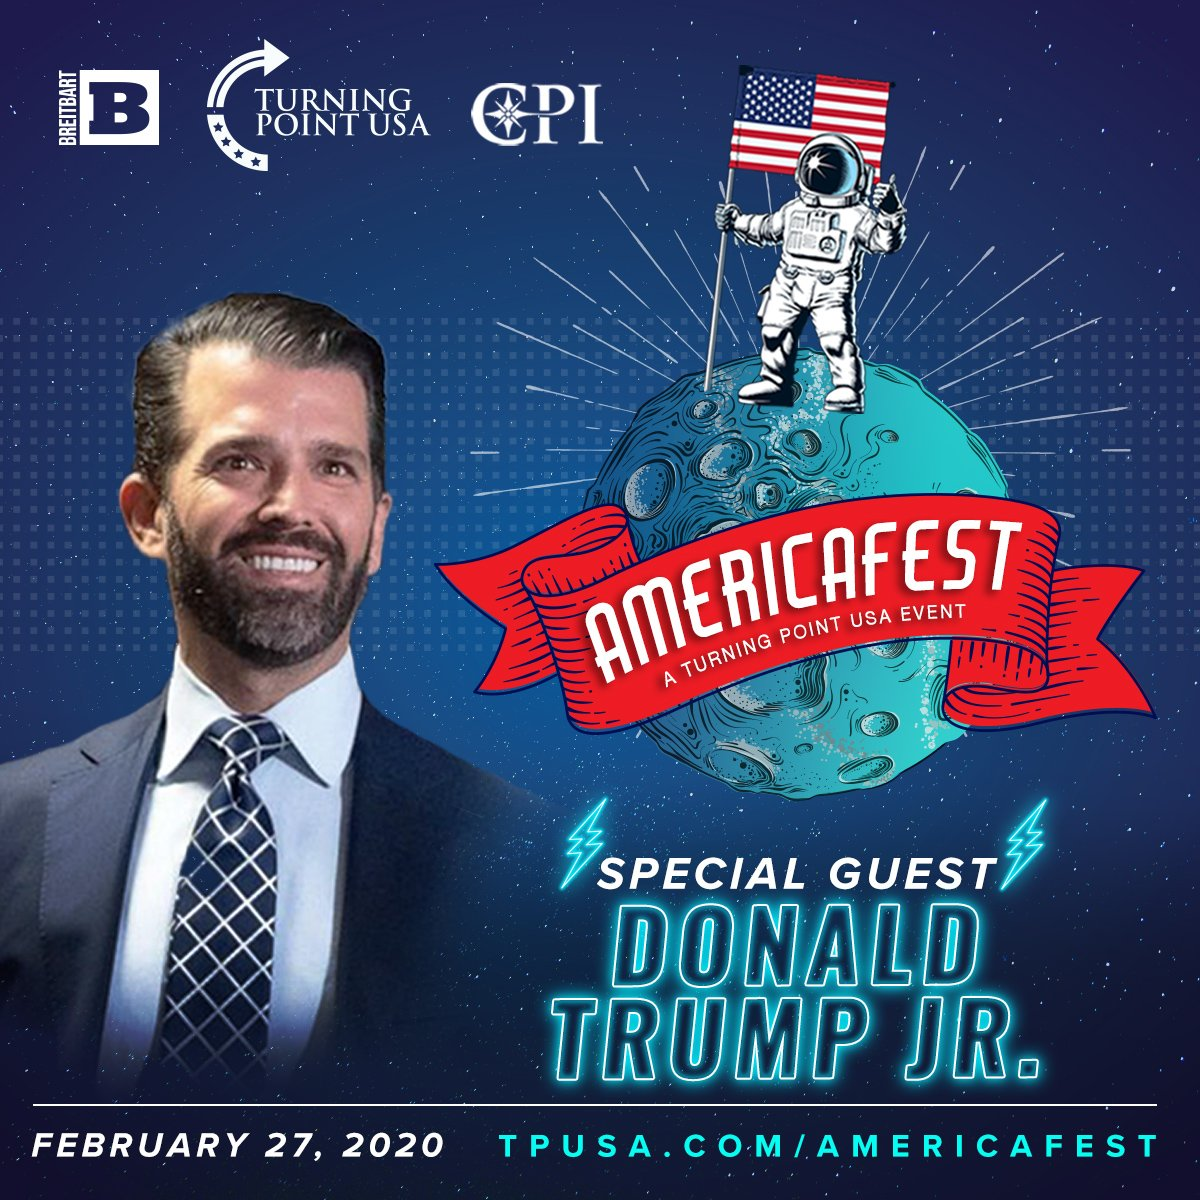 Don't Miss America's Freedom Party & The BIGGEST Party At CPAC! 🇺🇸🇺🇸🇺🇸  Join @TPUSA, @BreitbartNews, & @CPInst At Cadillac Ranch TOMORROW At 7 PM For AmericaFest Featuring Tons Of Special Guests, Including @DonaldJTrumpJr!  Get Your Tickets Today! 👉